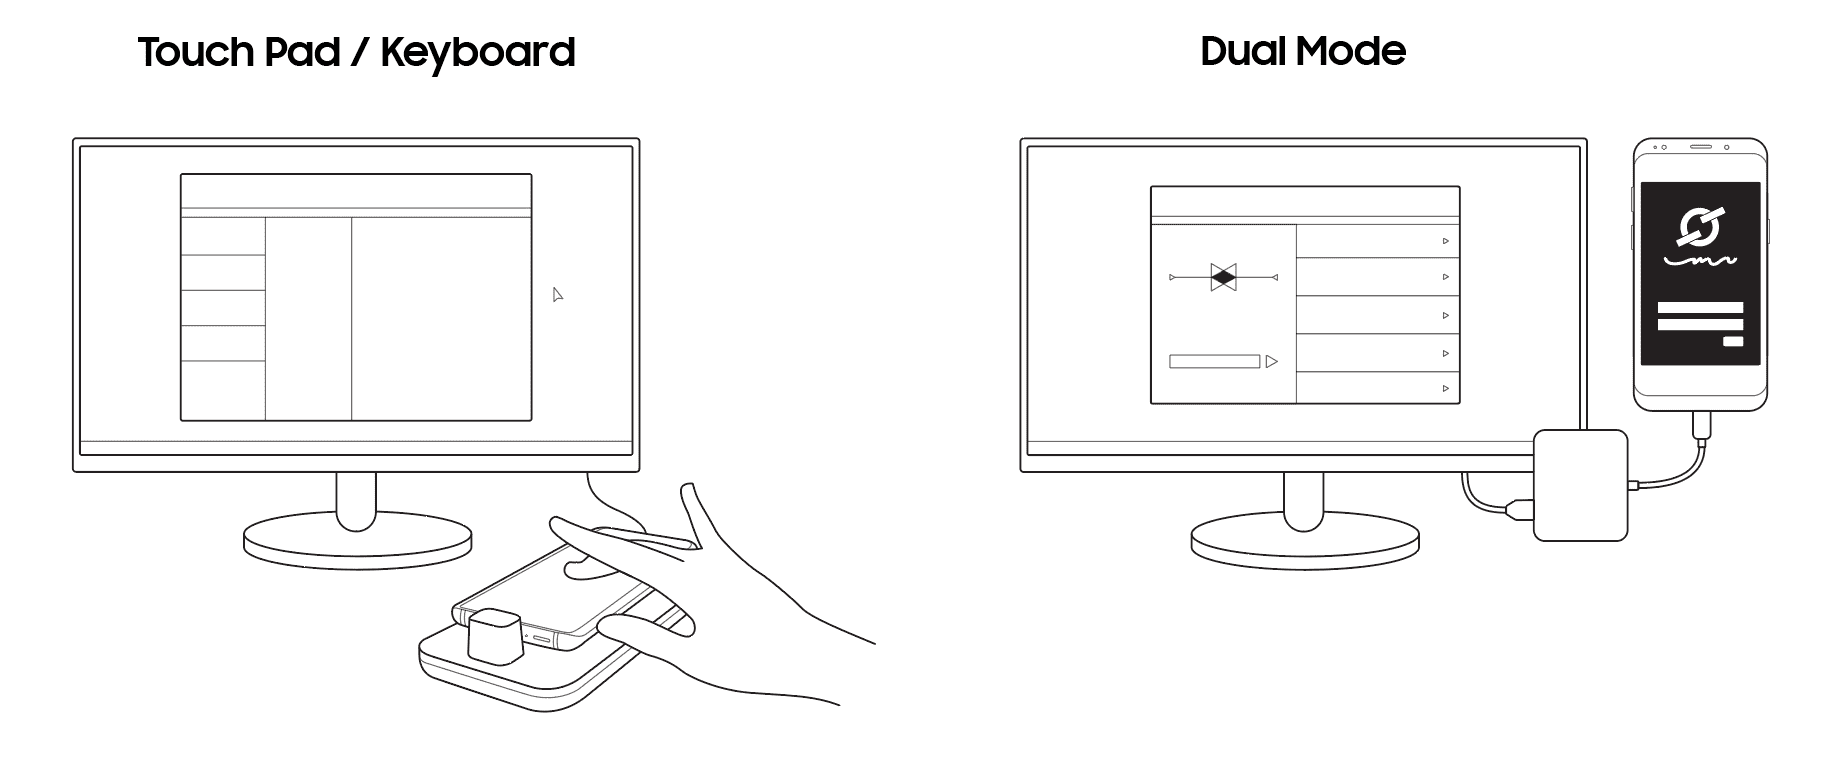 Figure 1: Overview of the different Samsung DeX Modes